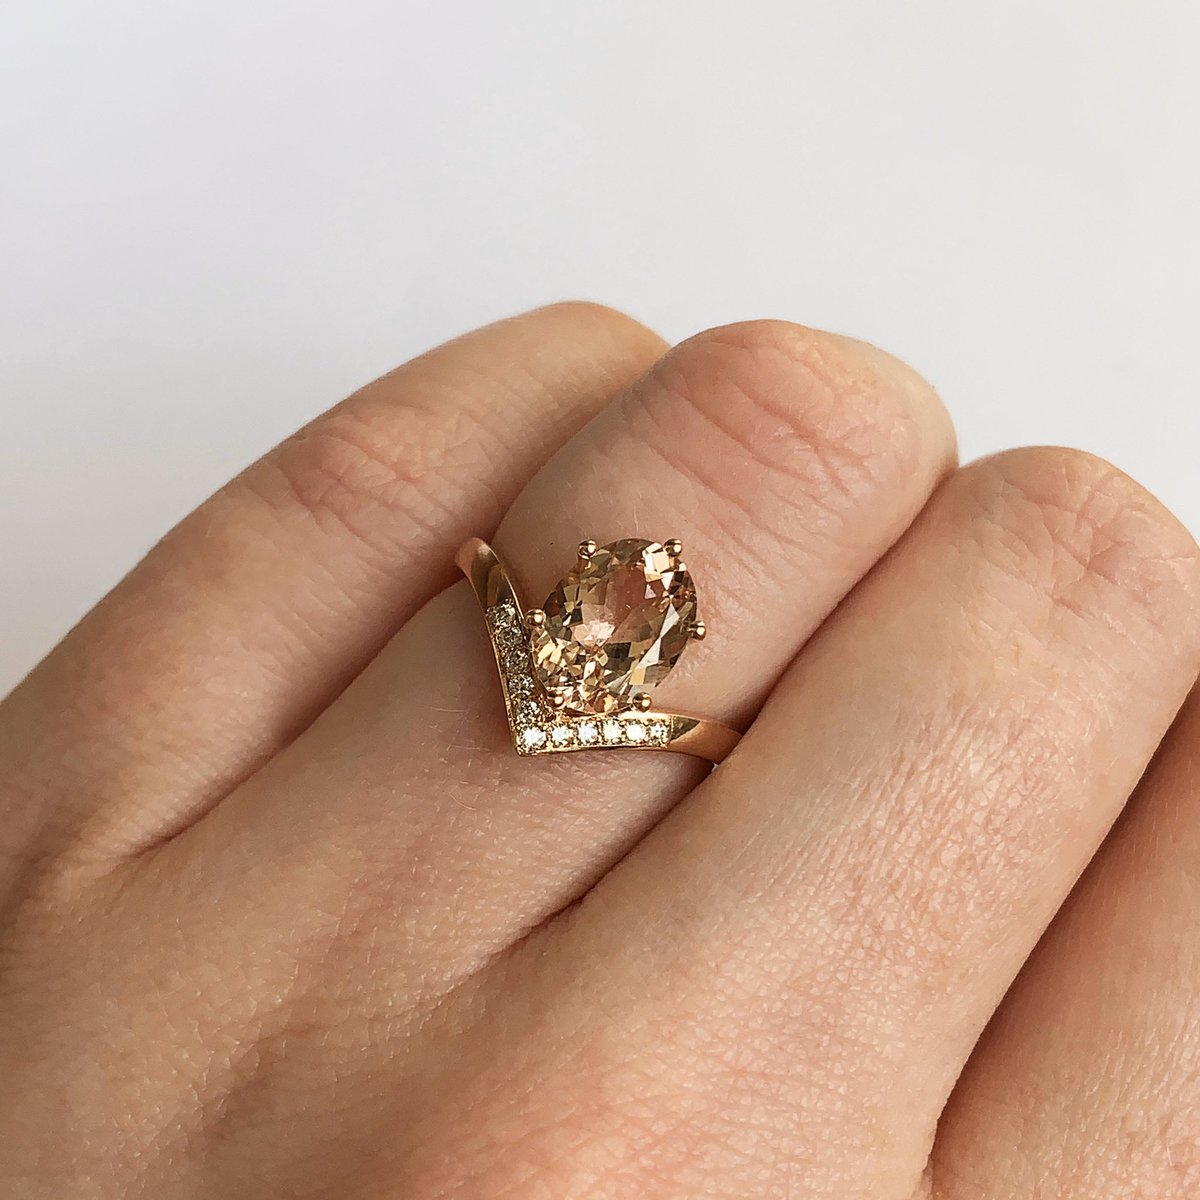 test Twitter Media - Congratulations to the lucky lady that received this morganite & diamond ring in celebration of her graduation from modern languages! Best of luck starting your MA this month during these difficult times. But don't worry, this new ring will be there to perk you up. 😉😊🎓 https://t.co/oxlzUrbpcl